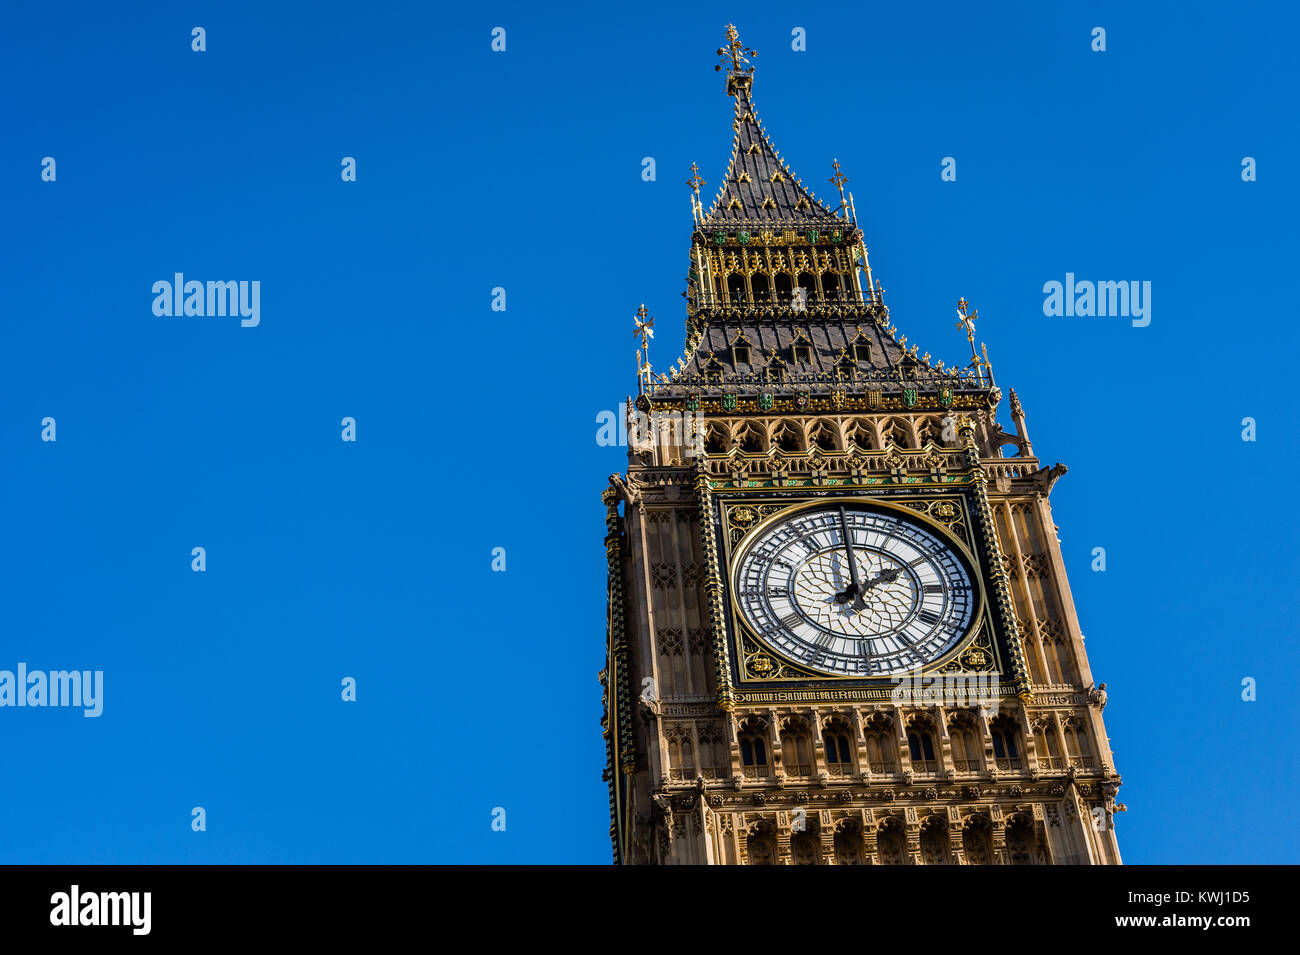 The Queen Elizabeth Tower at the Houses of Parliament, the Palace of Westminster in London against a clear blue - Stock Image